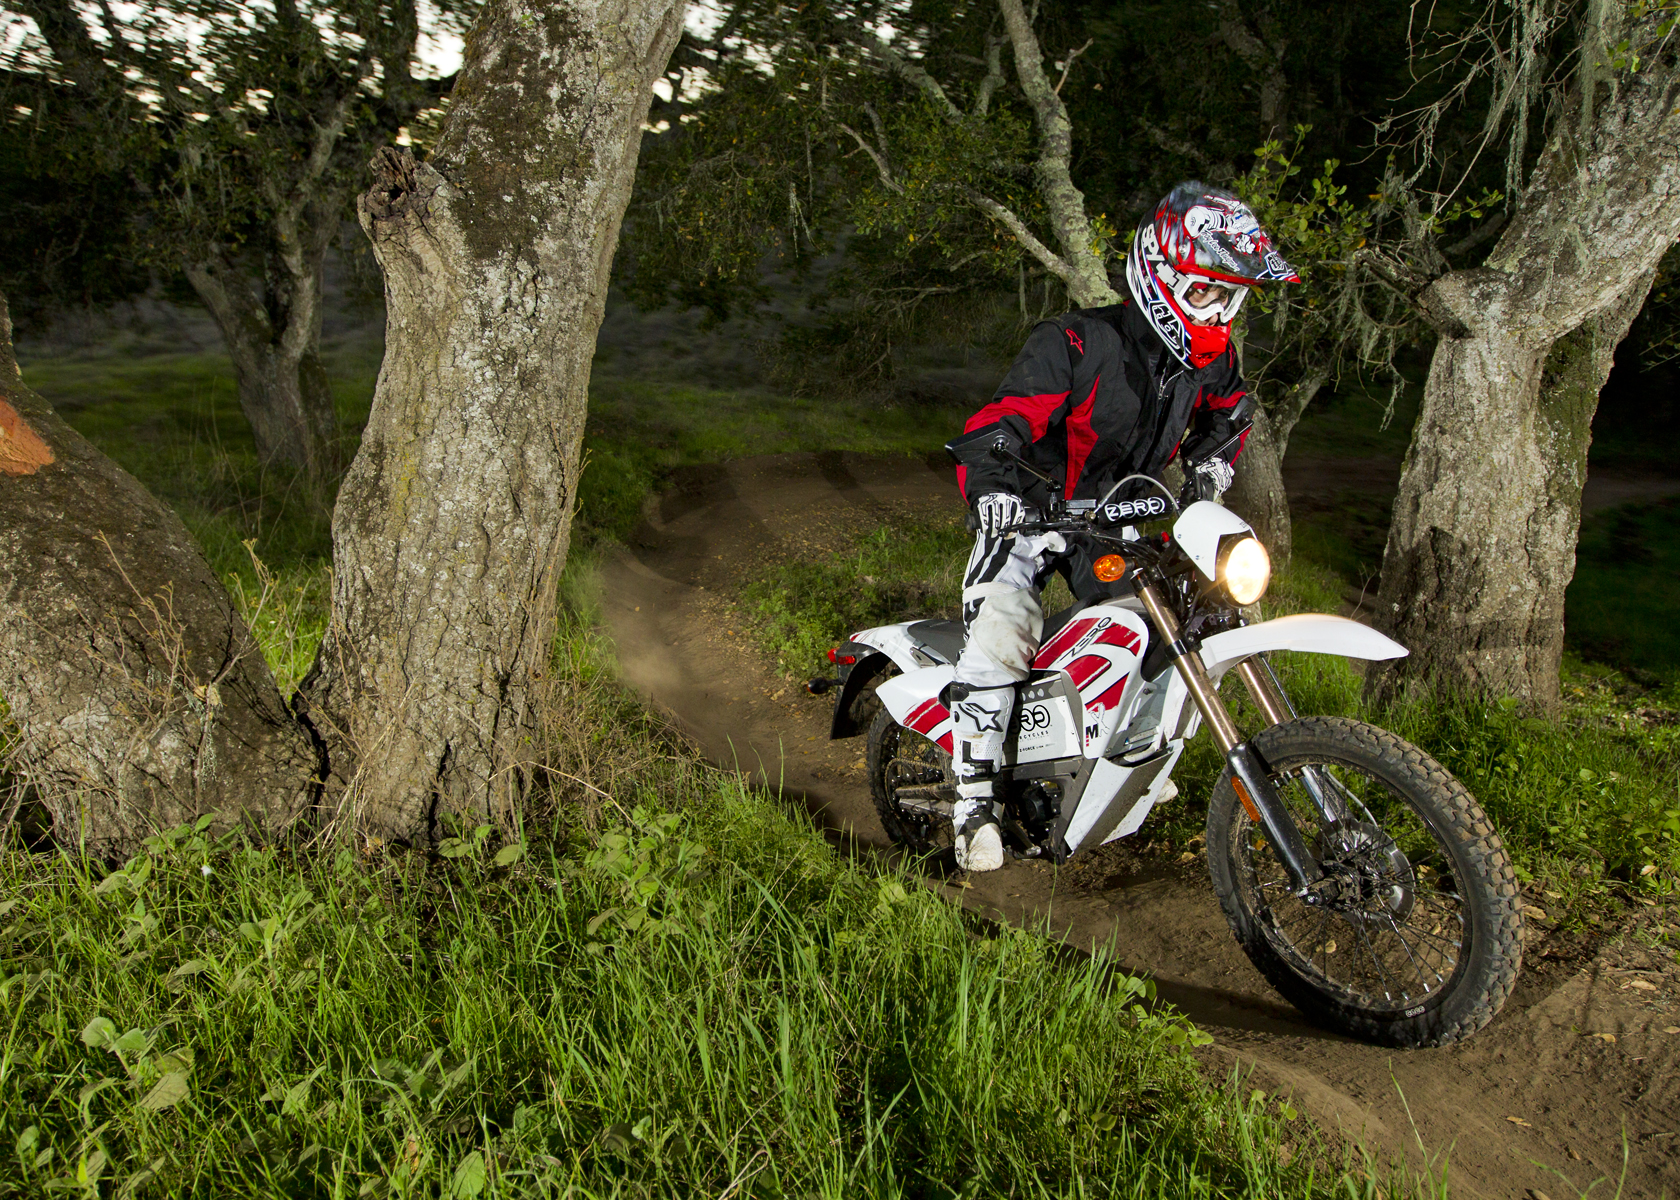 2011 Zero MX Electric Motorcycle: Dirt Path Through Oak Trees